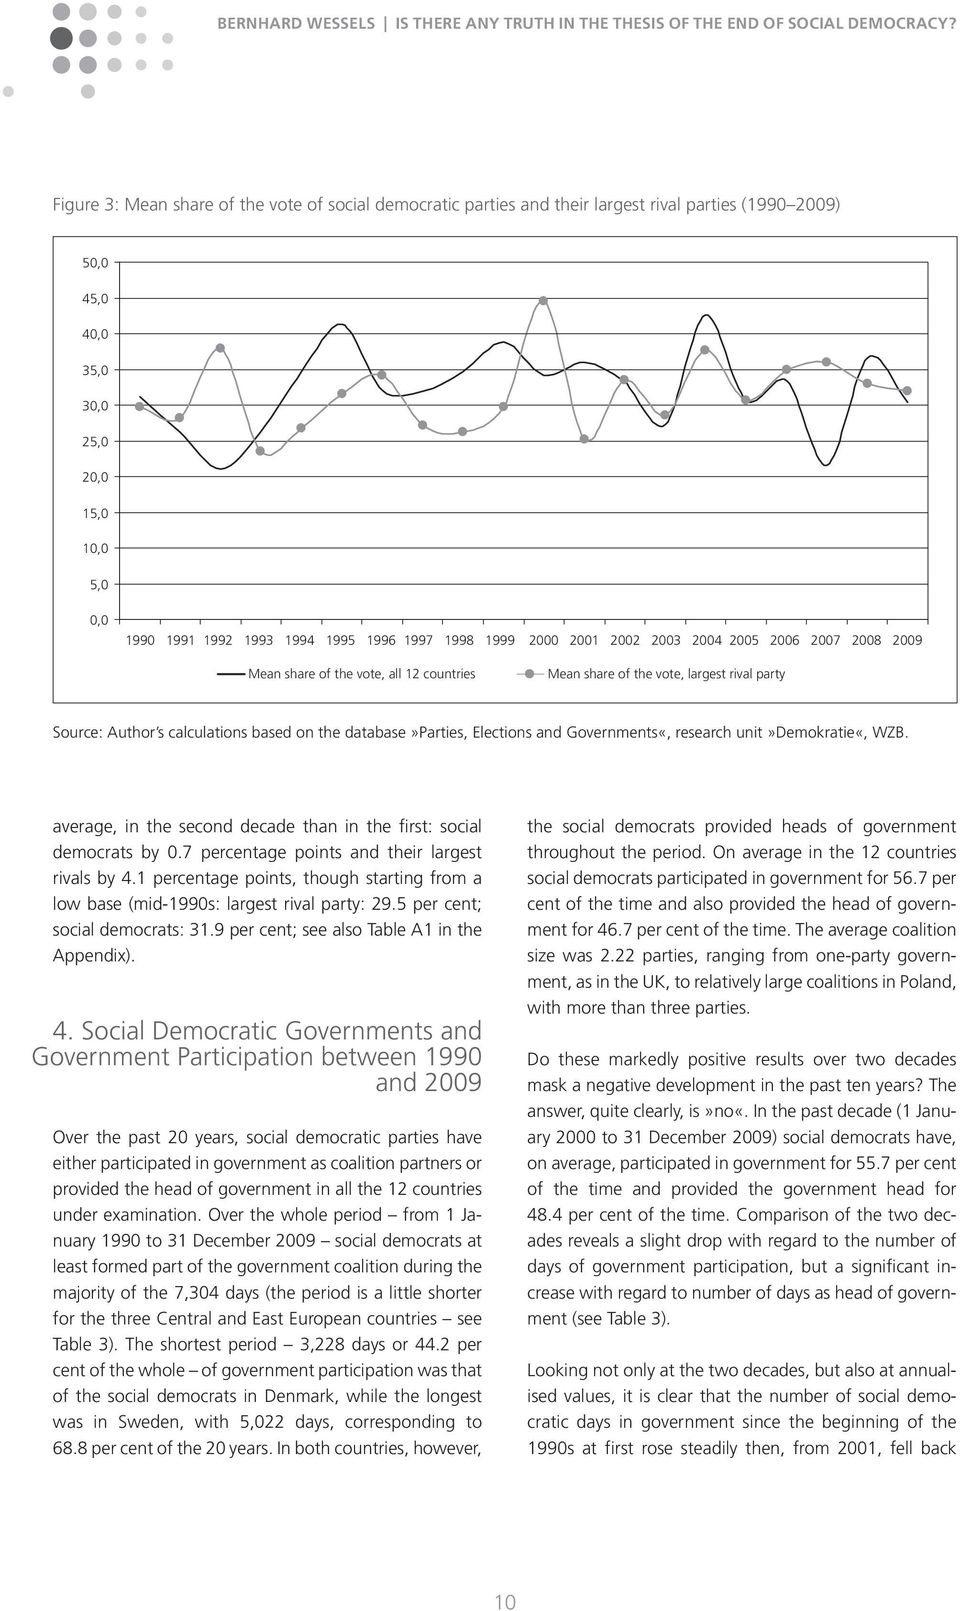 database»parties, Elections and Governments«, research unit»demokratie«, WZB. average, in the second decade than in the first: social democrats by 0.7 percentage points and their largest rivals by 4.